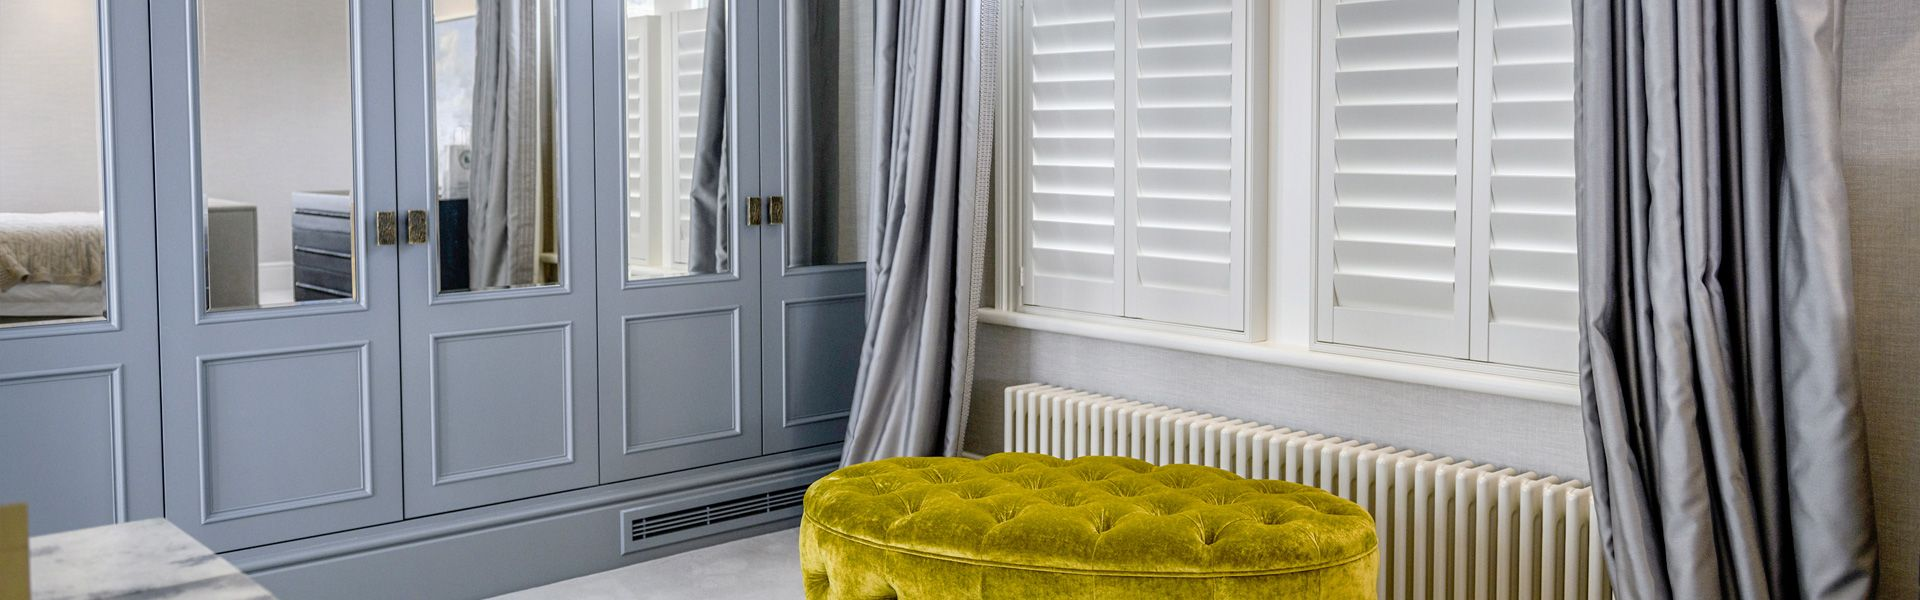 Plantation Shutters South East by Plantation Shutters Ltd